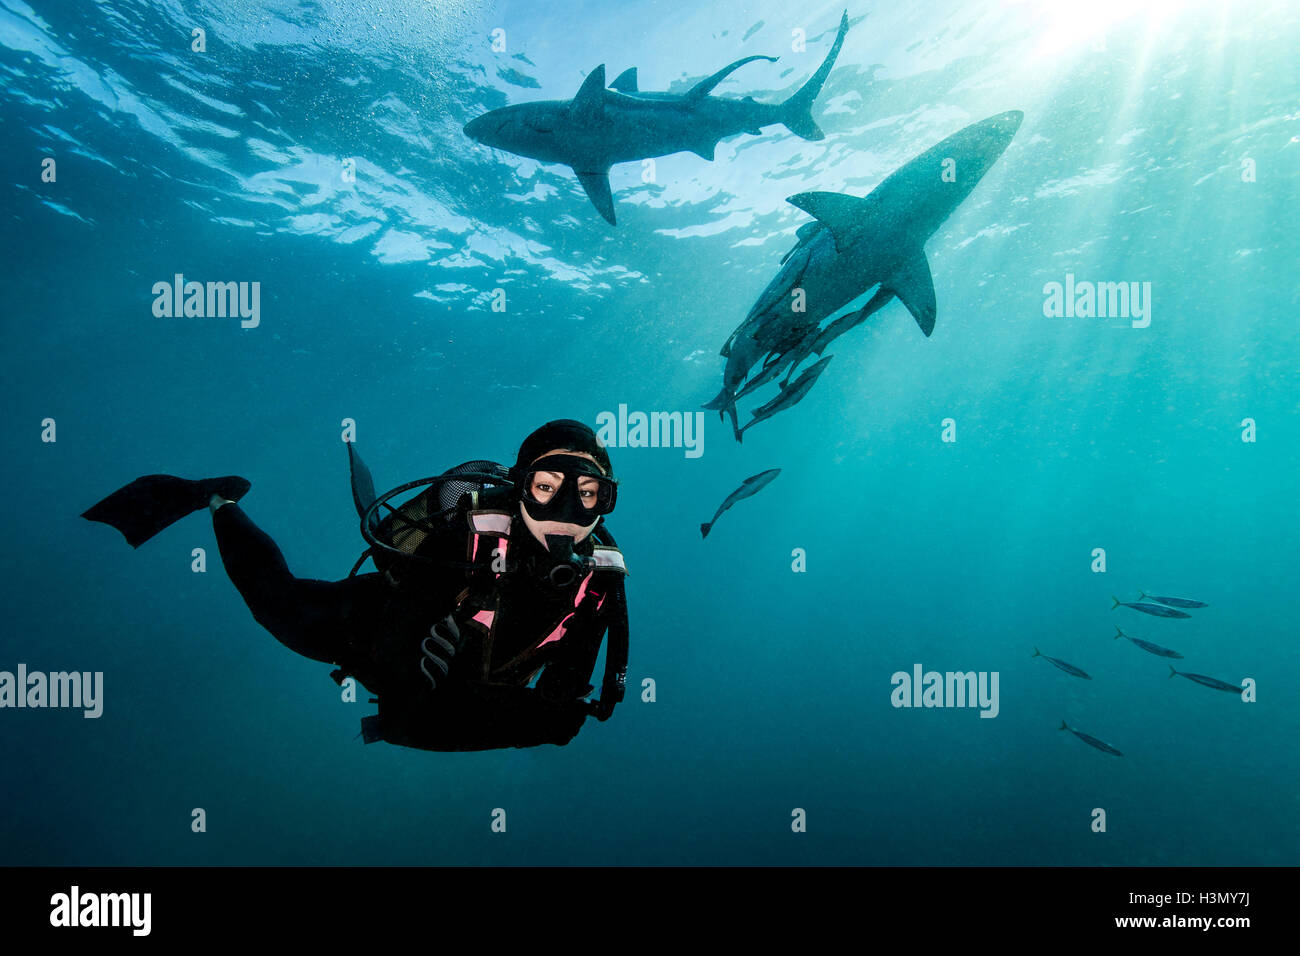 Diver surrounded by Oceanic Blacktip Sharks (Carcharhinus Limbatus) near surface of ocean, Aliwal Shoal, South Africa - Stock Image